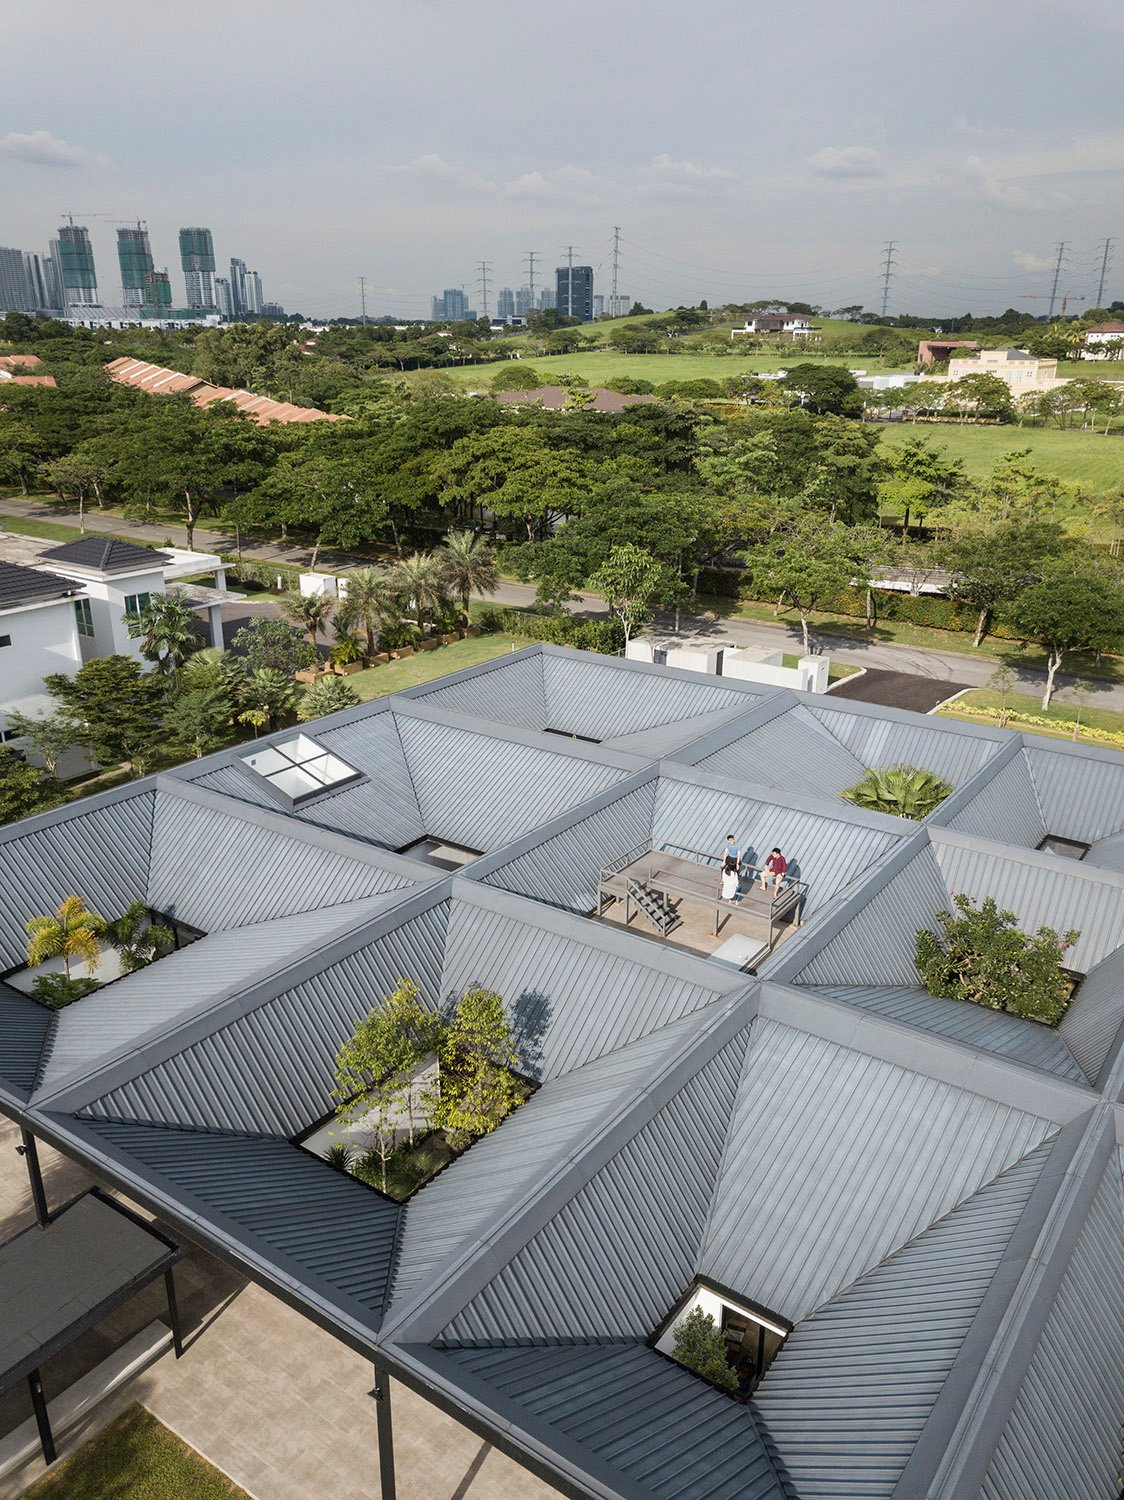 Aerial view of the house showcasing its characteristic inverted timber roofs, forming a grid of courtyards. Fabian Ong